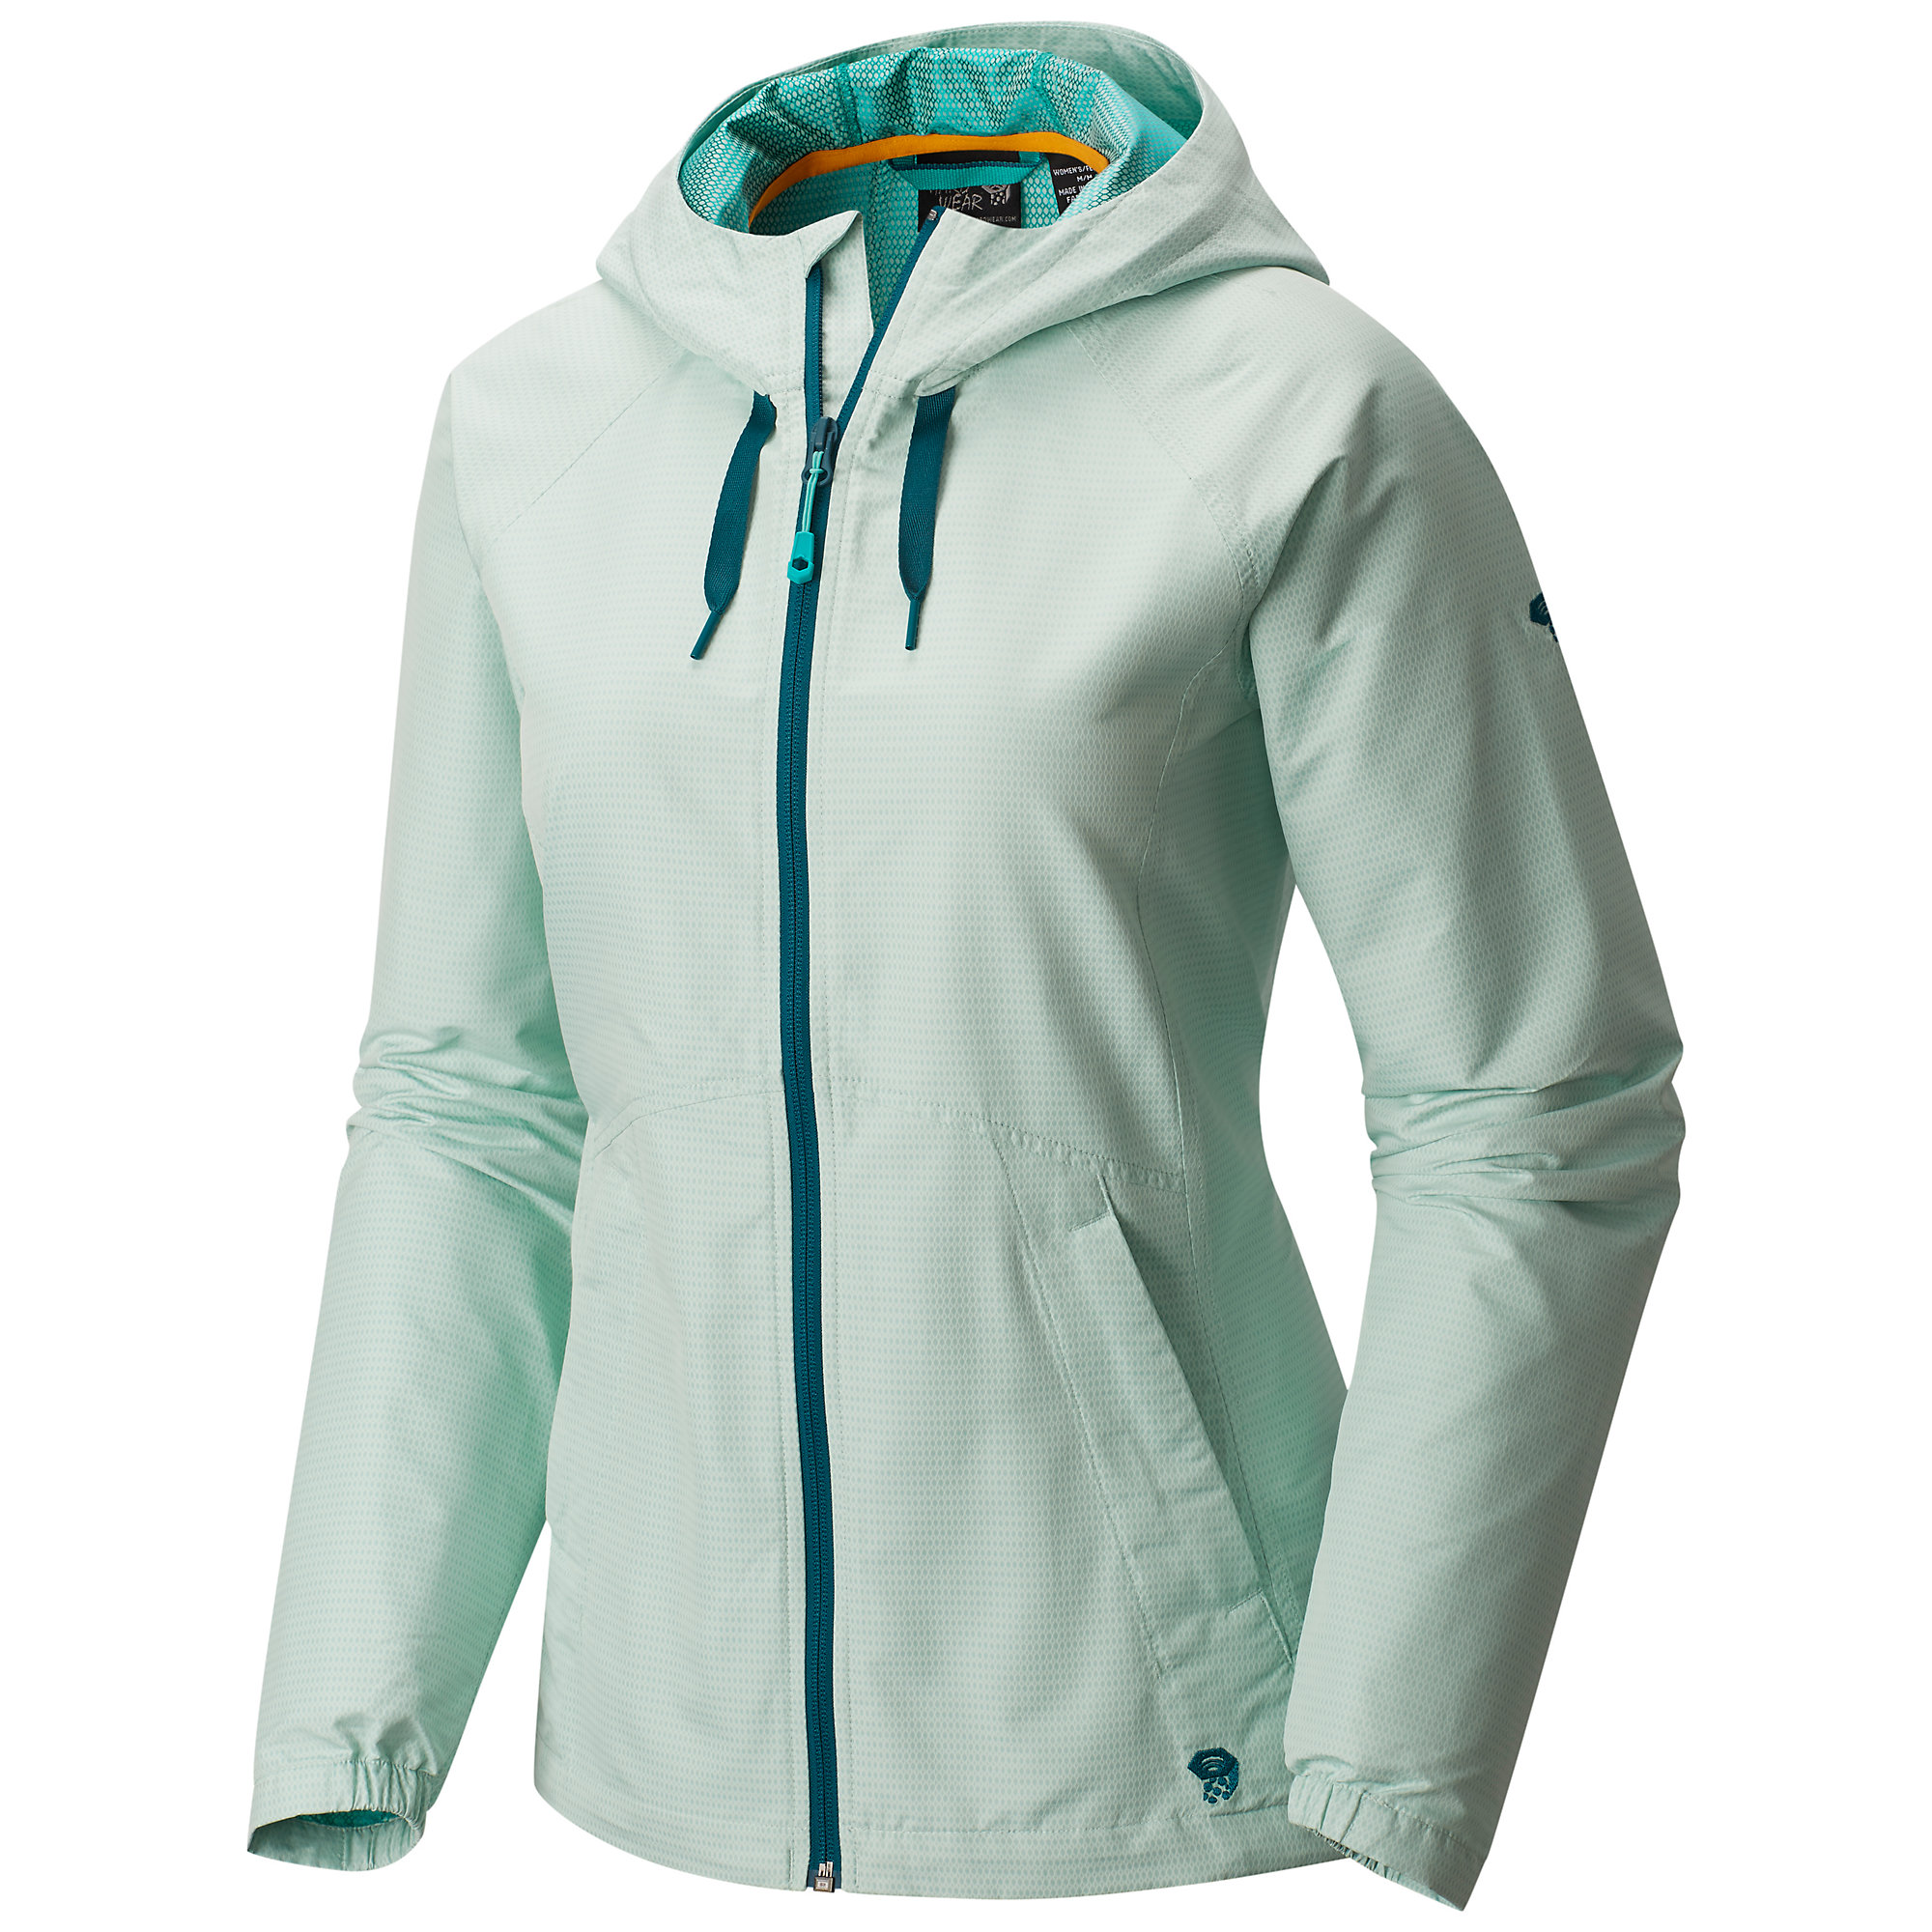 Mountain Hardwear Wind Activa Jacket